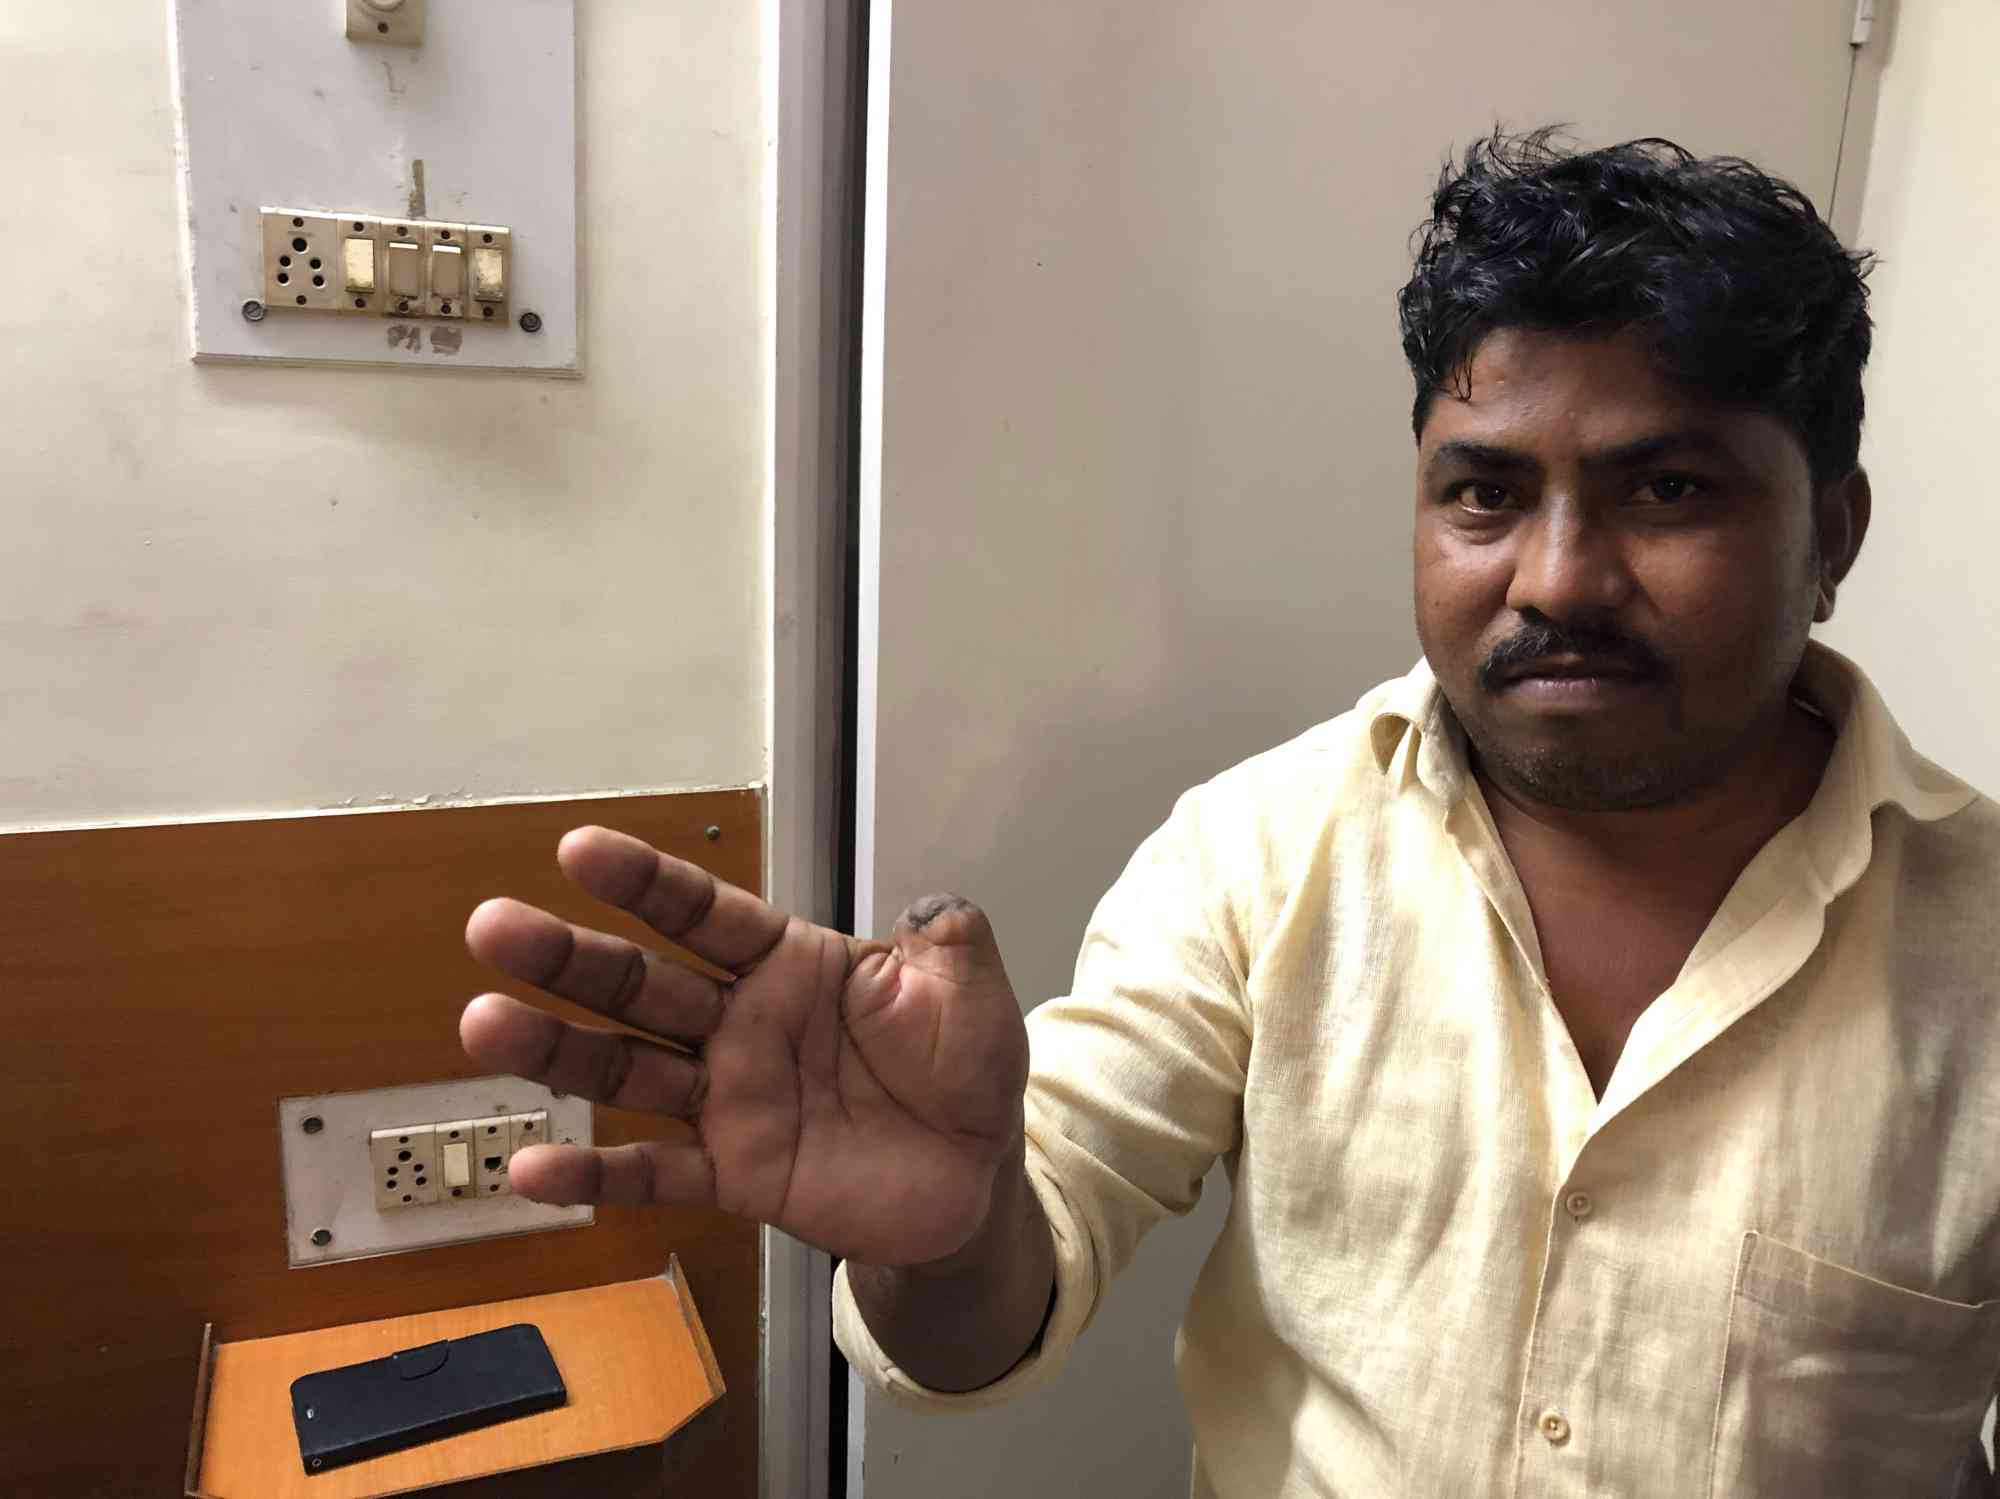 Sanitation worker Sanjay Pandharina Gote lost his thumb in the hydraulic cylinder of a garbage truck. (Photo credit: Sujatha Fernandes).